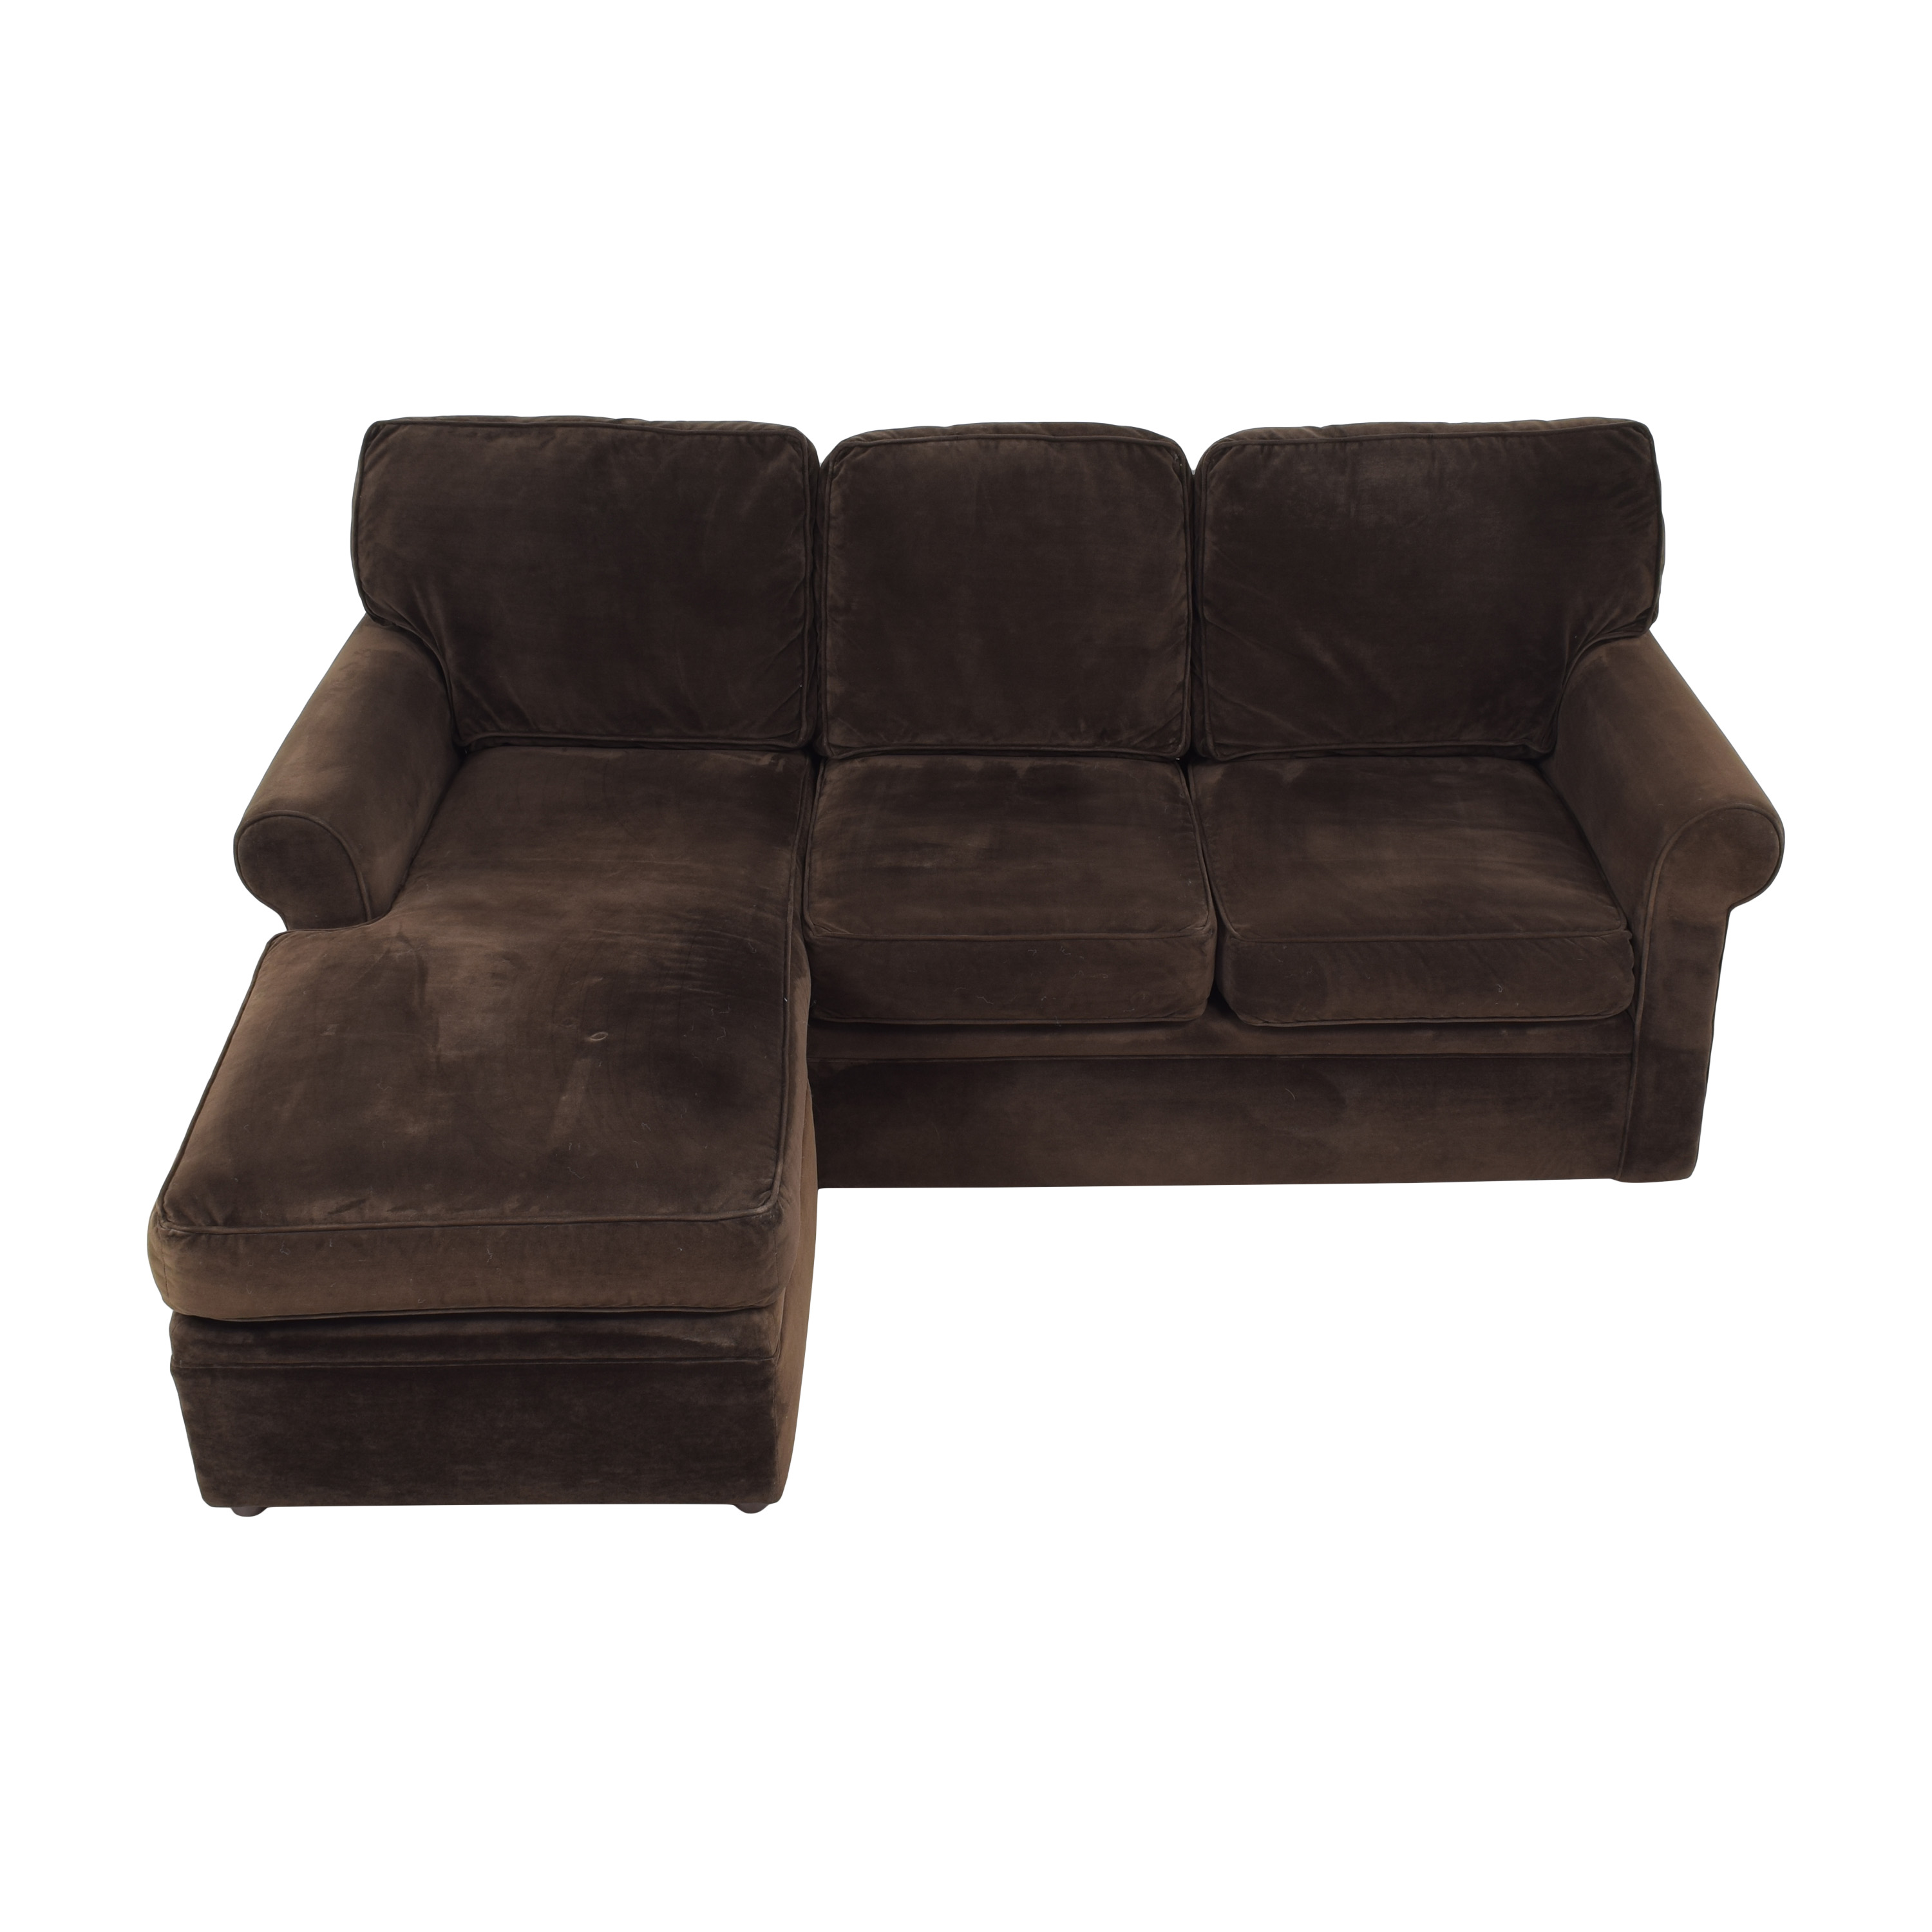 Rowe Furniture Rowe Furniture Dalton Sofa with Chaise Ottoman for sale